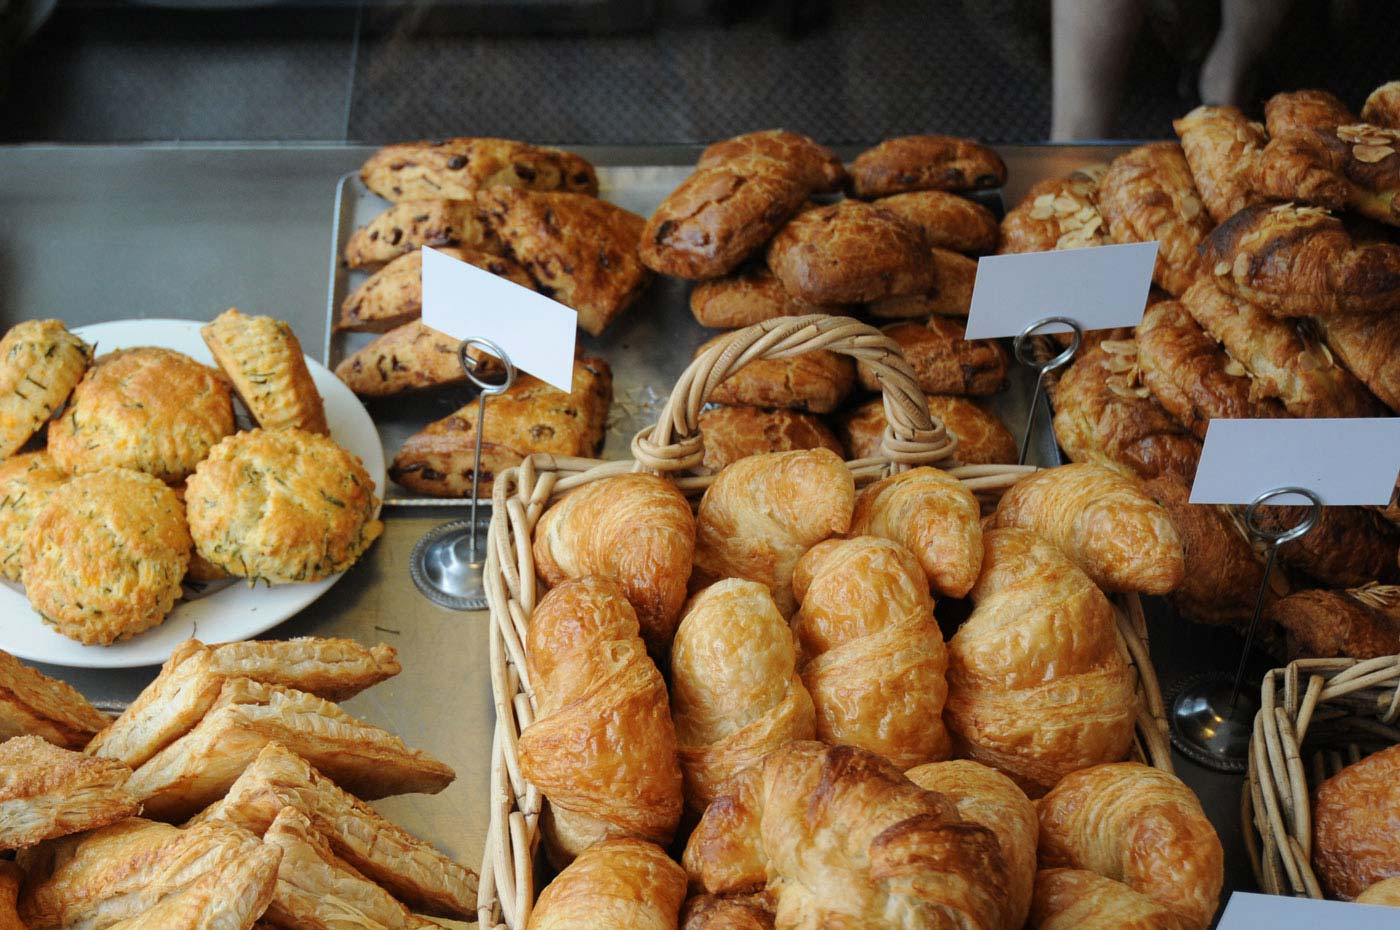 Savory Pastries from Colson Patisserie